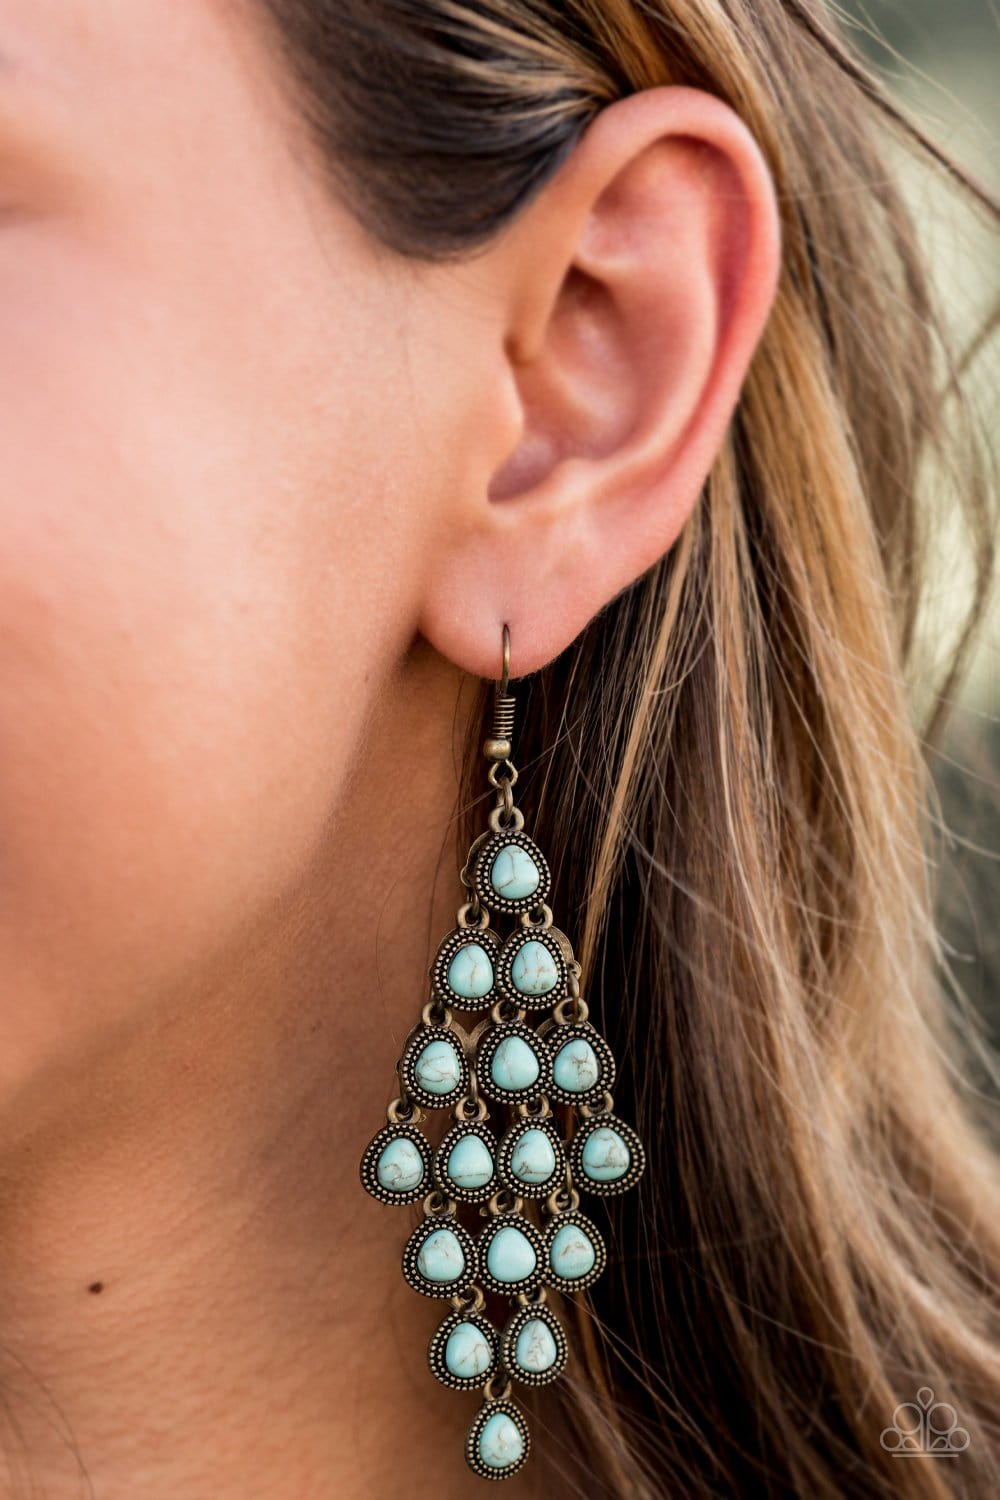 Paparazzi: Rural Rainstorms - Brass/Turquoise Earrings